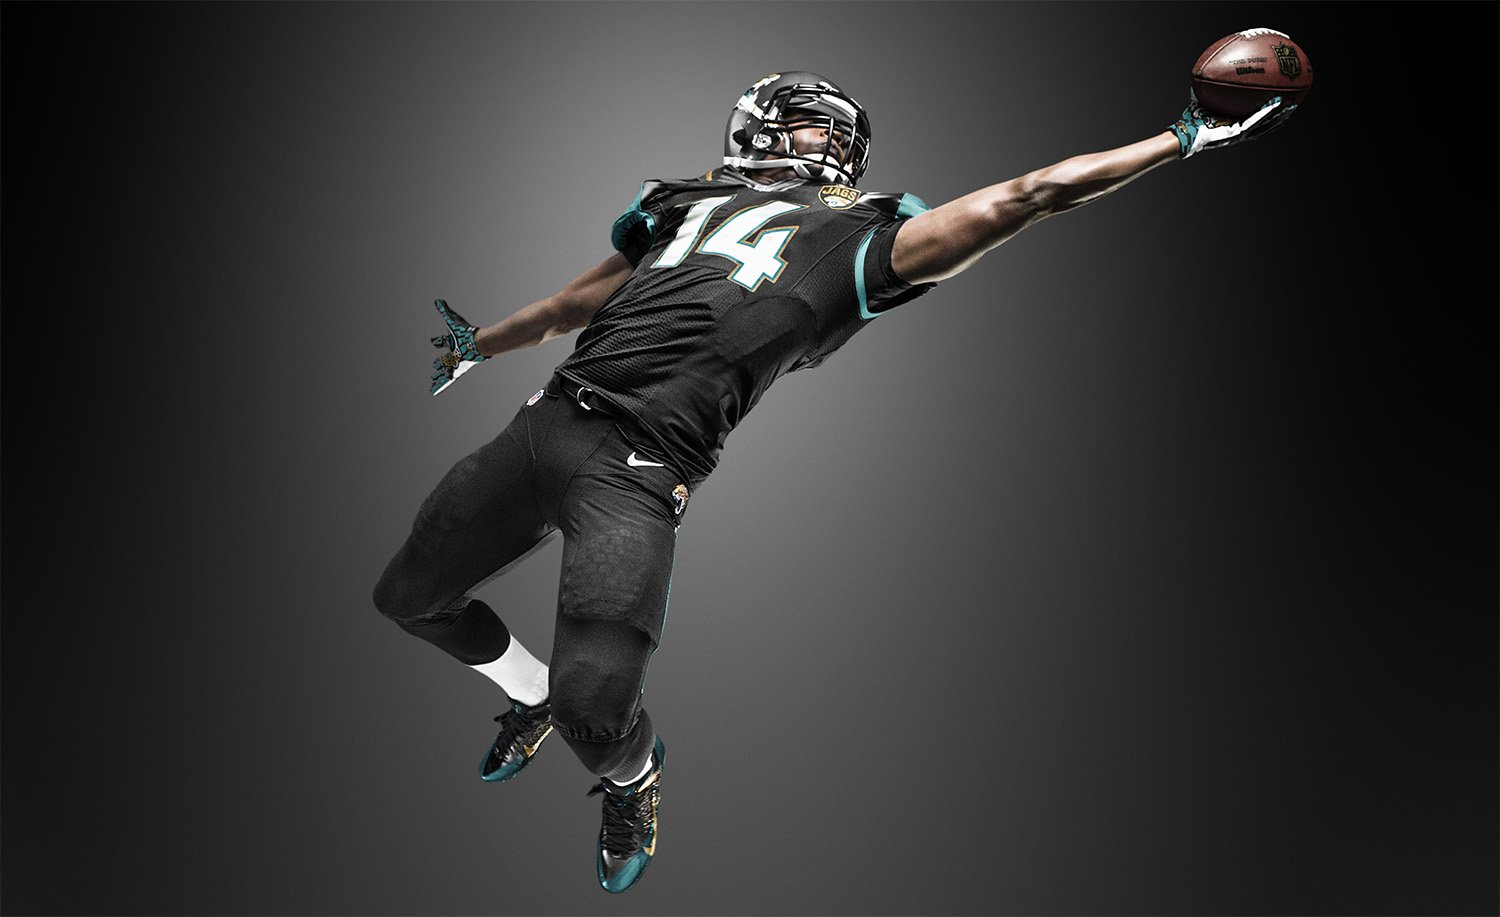 Nike American Football Wallpaper 2 1500x917